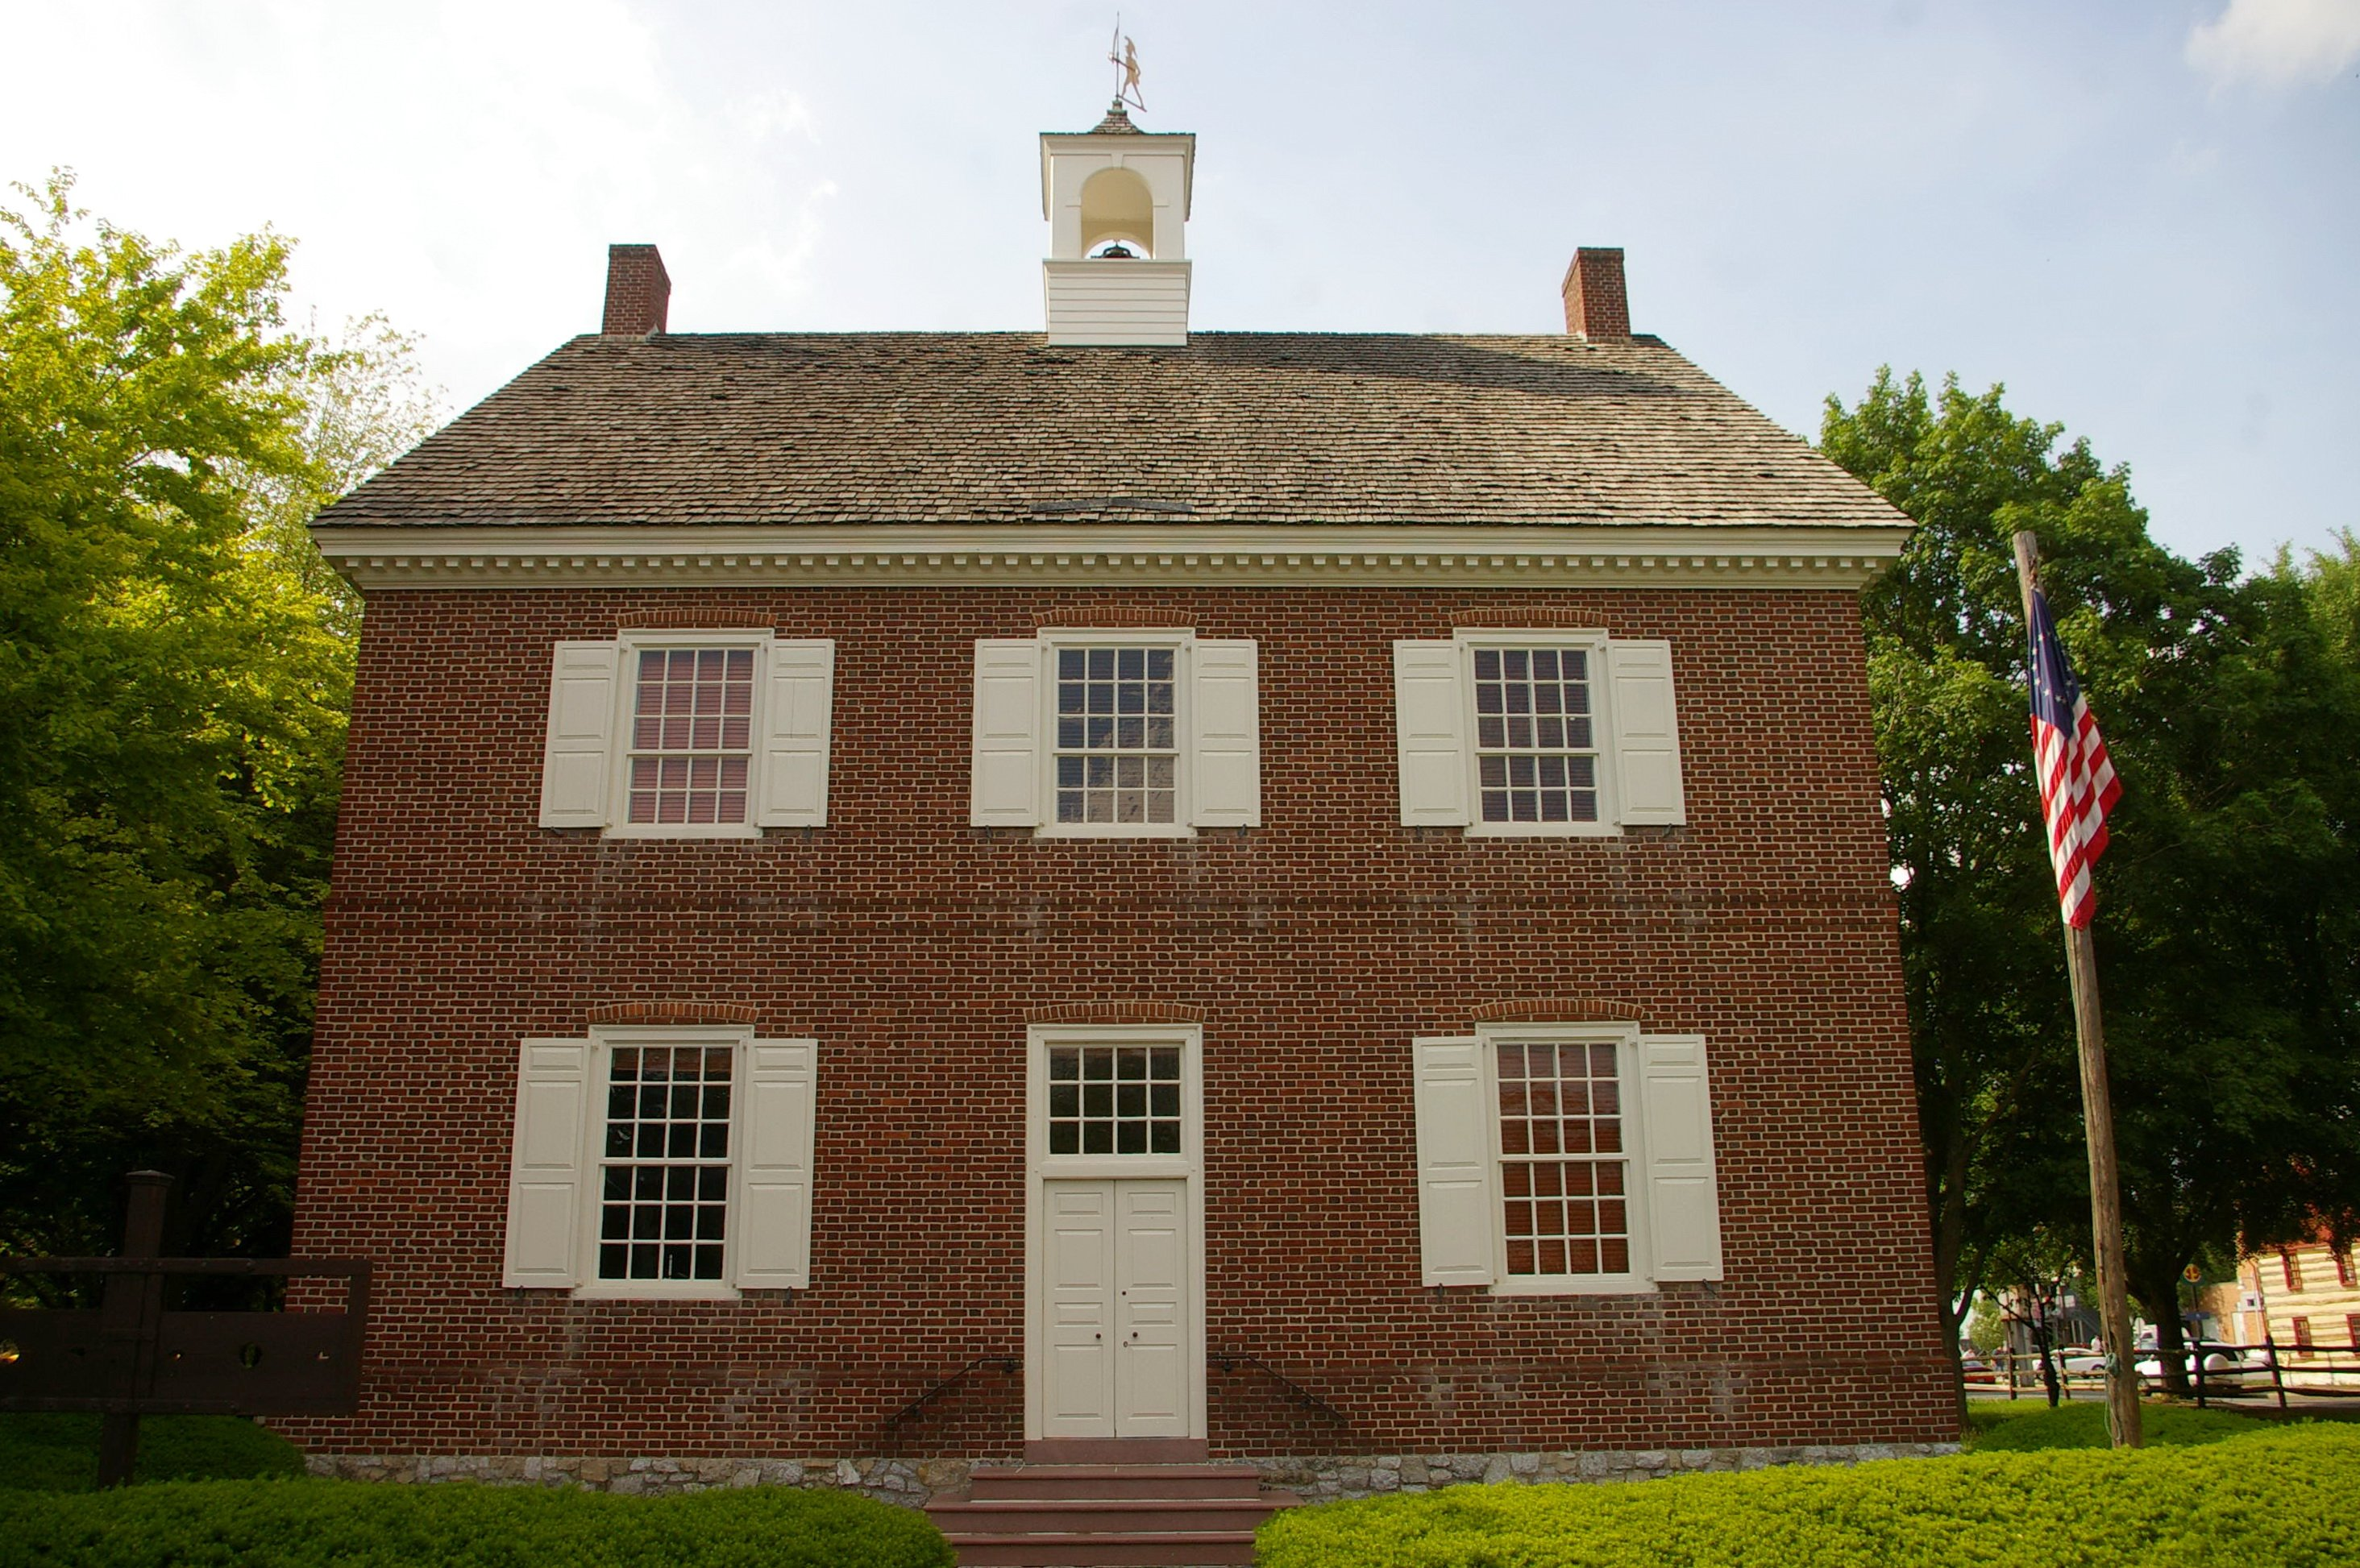 This 1976 reproduction of York's Colonial Courthouse serves to now educate the public about the city's significant role in the beginnings of the United States.